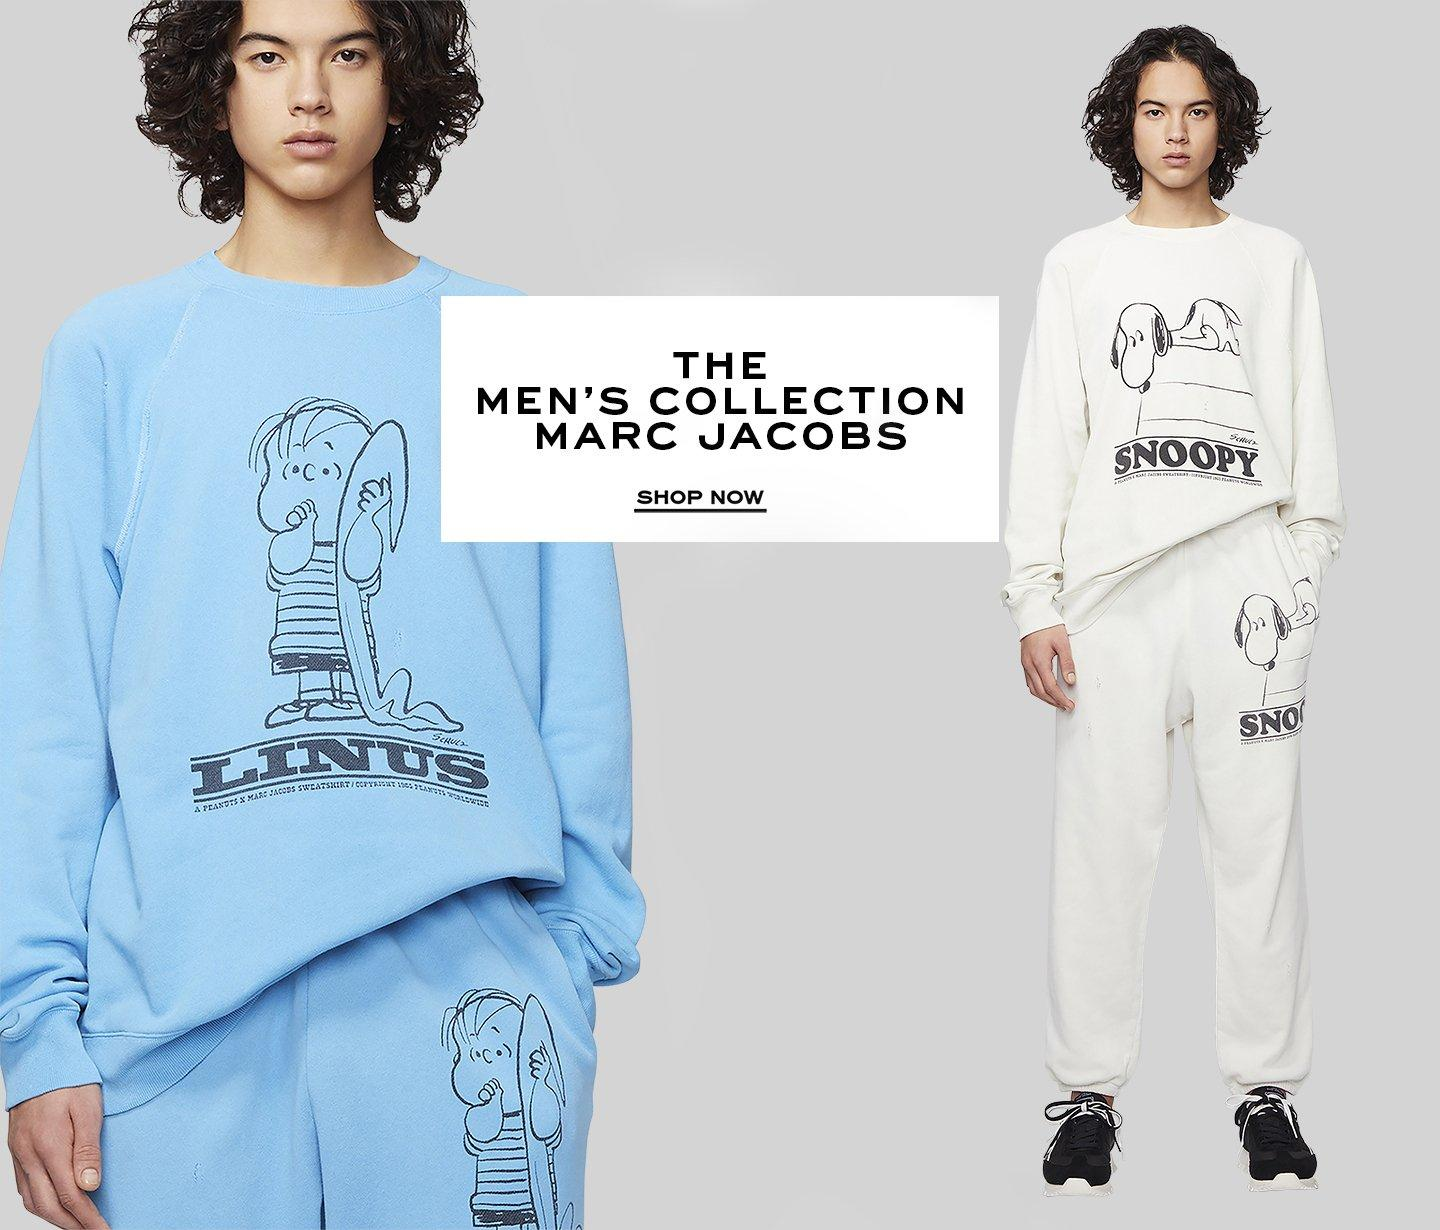 The Mens Collection Marc Jacobs. Shop Now.